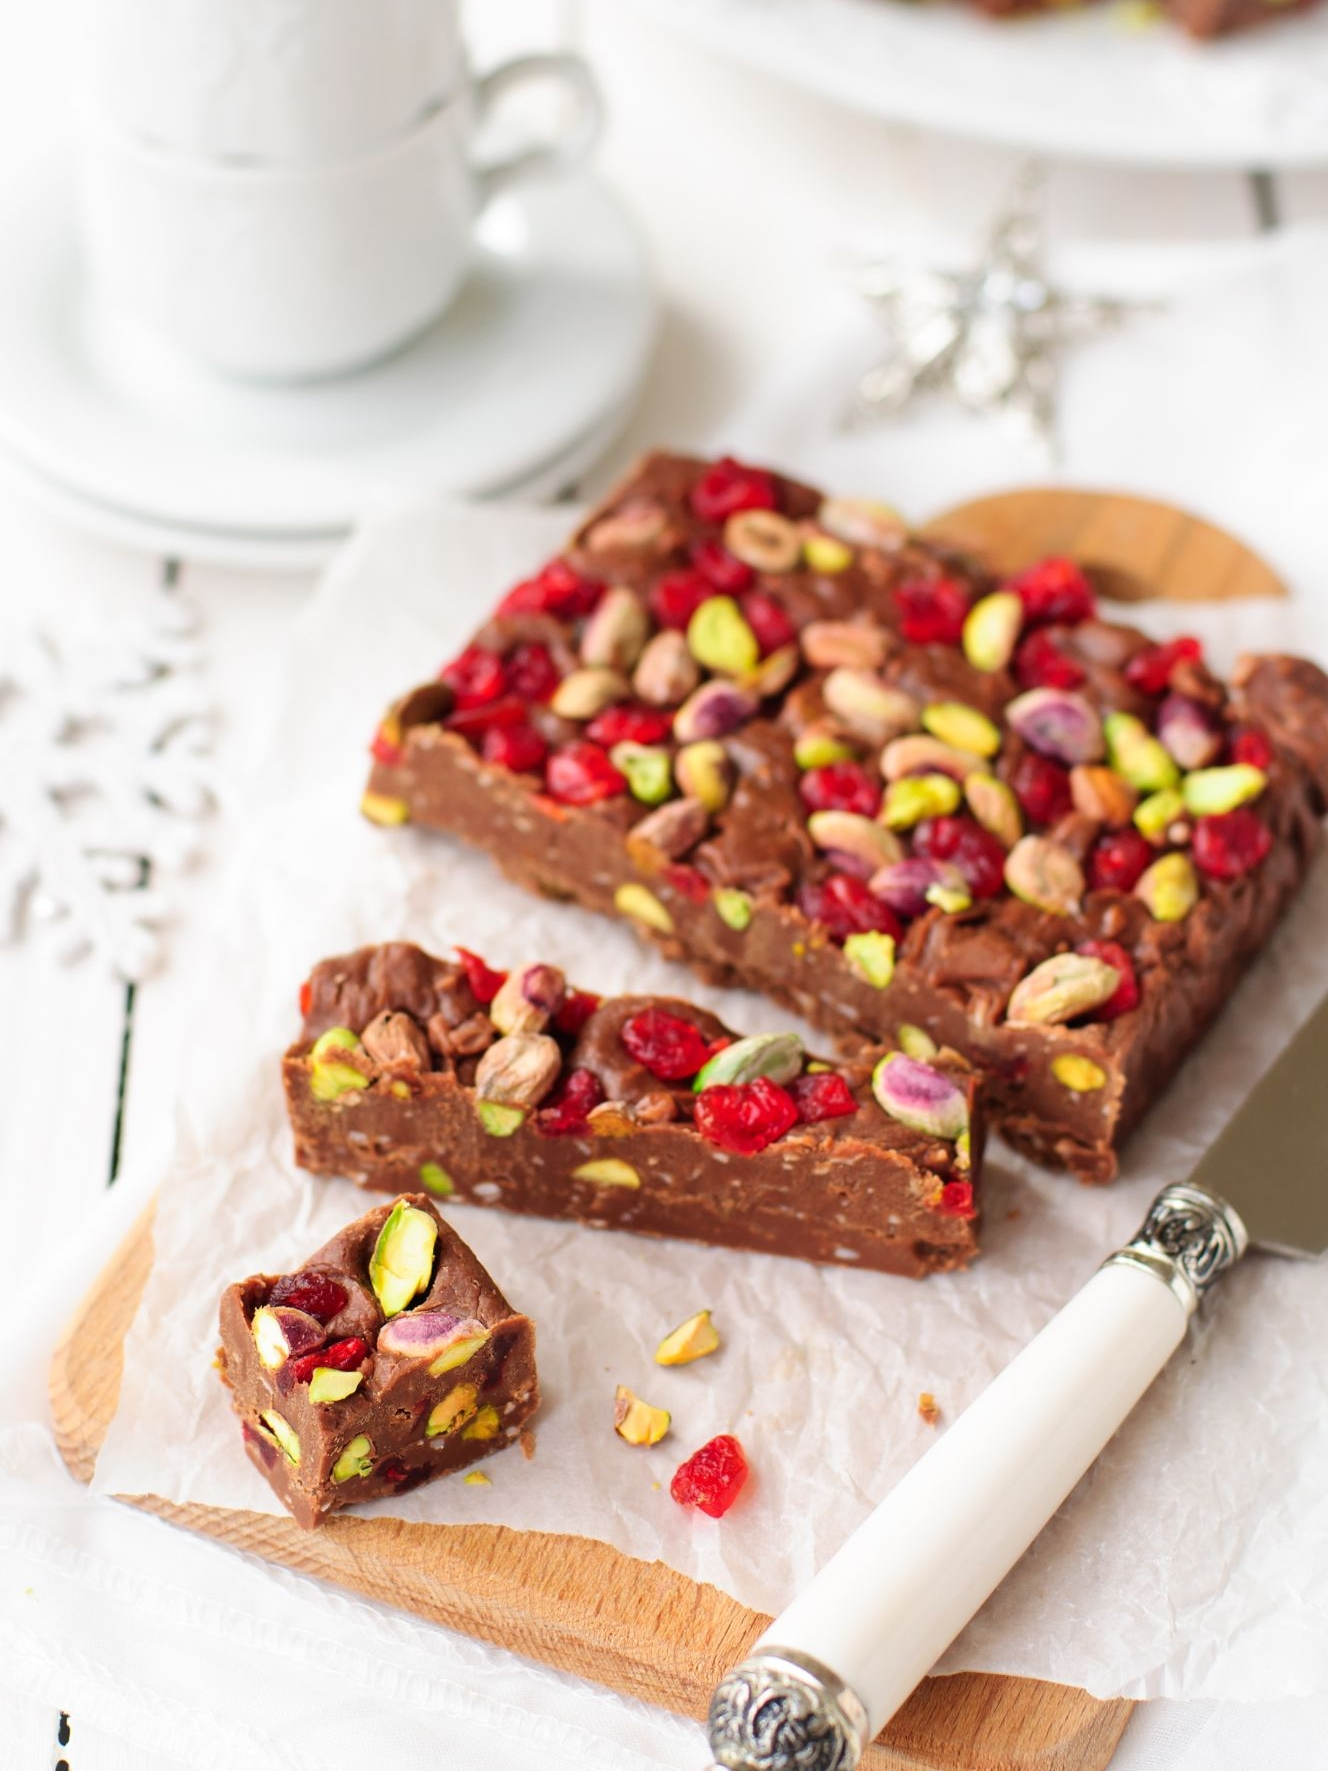 Chocolate Fudge with Cherries, Pistachio & Coconut Recipe